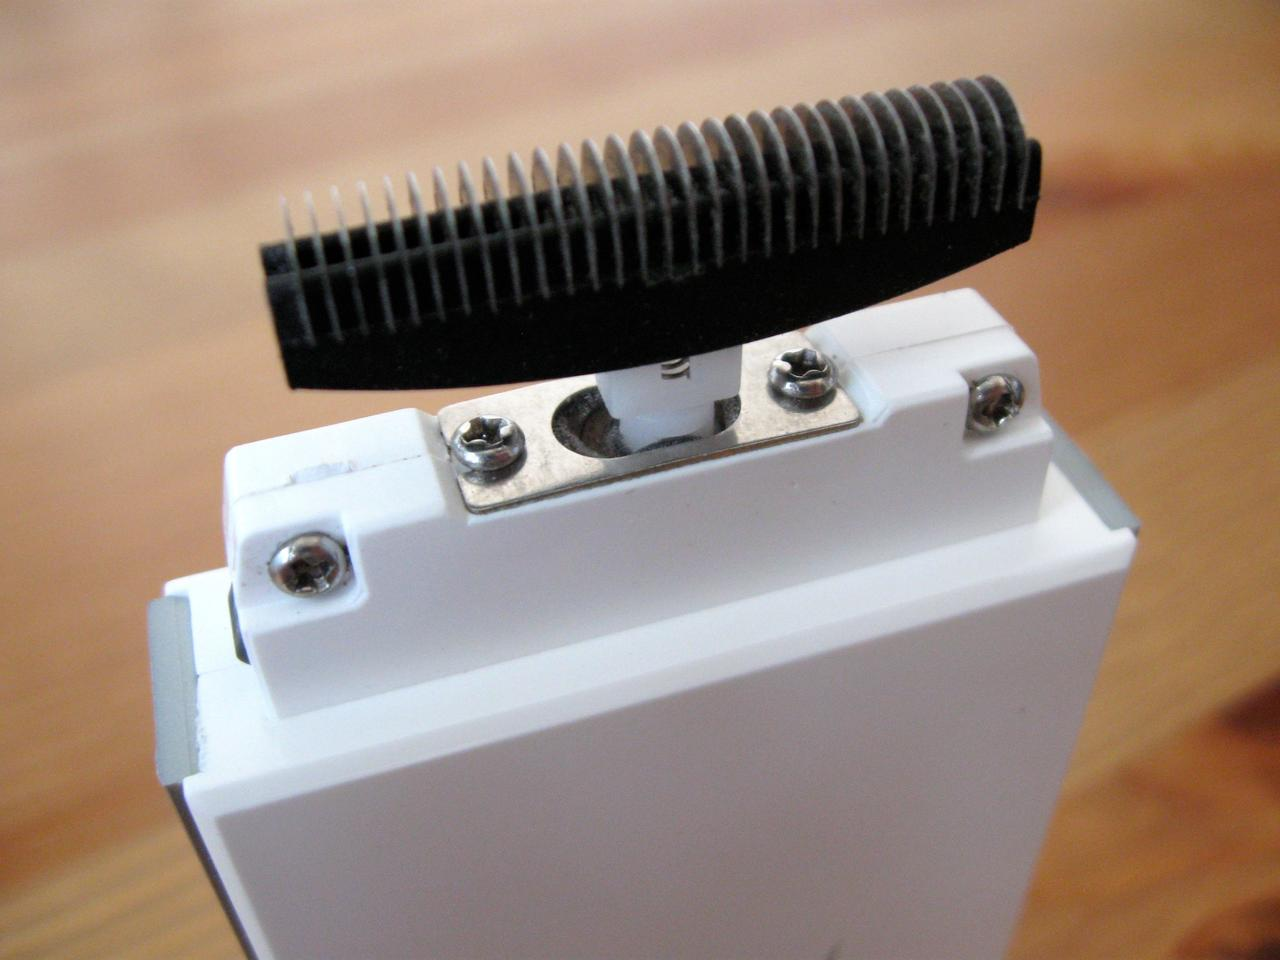 The ShaveTech's replaceable inner blades